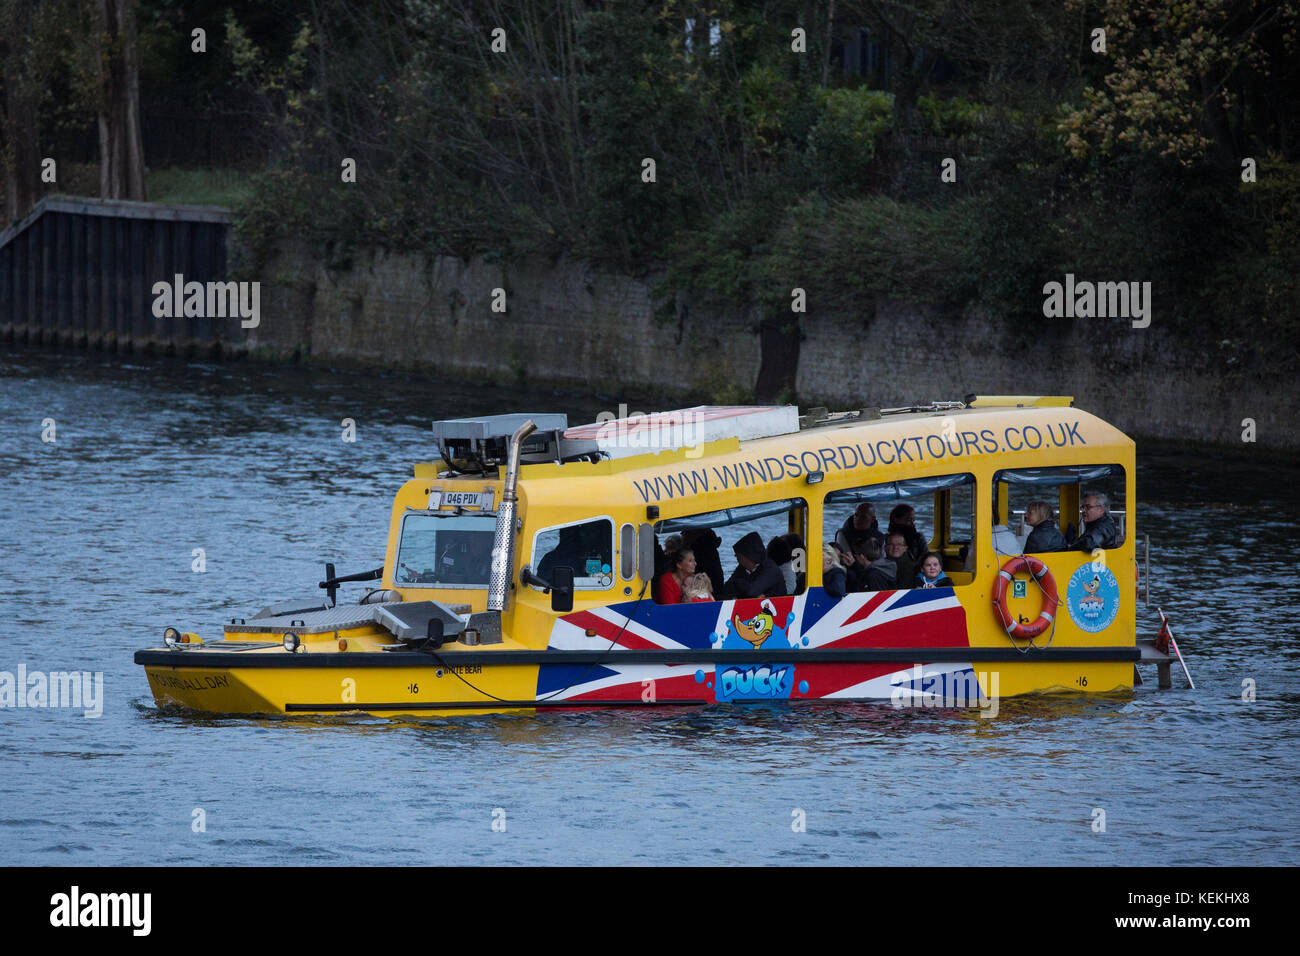 Windsor, UK. 21st October, 2017. Windsor Duck Tours' purpose-built SeaHorse 'duck' boat based on a historical - Stock Image